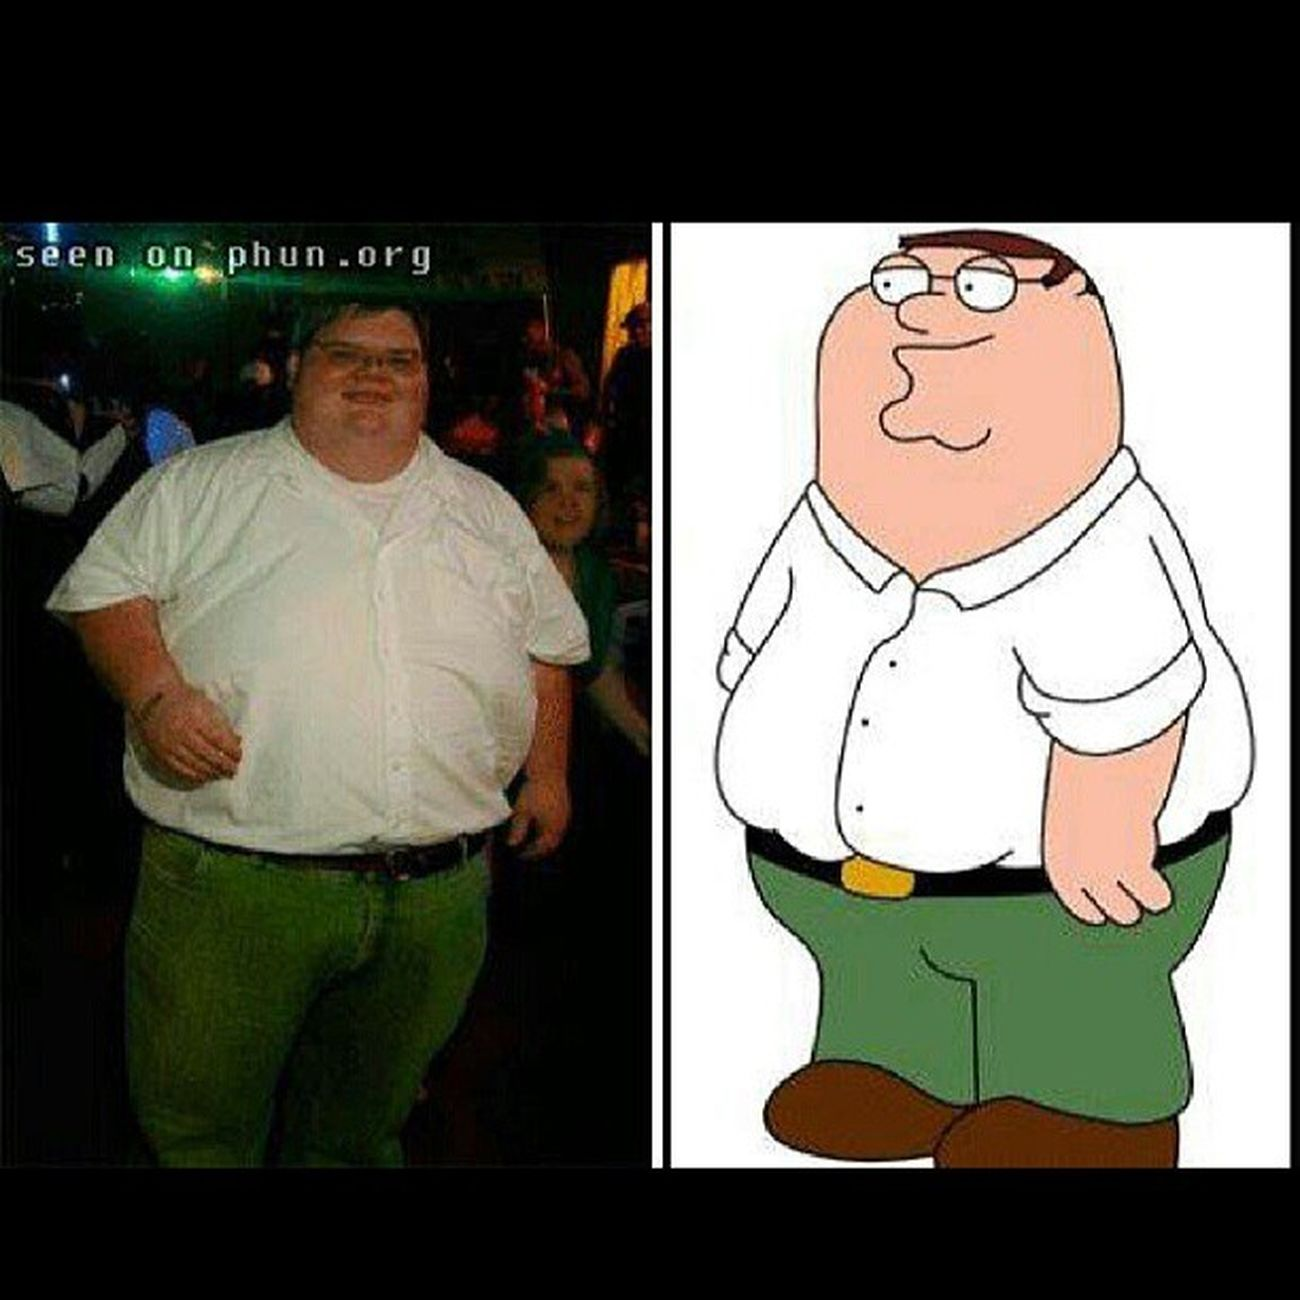 Familyguy LOL Funny Stewie family haha louis quotes royalbaby thesimpsons meme simpsons it omg awesome petergriffin meg baby comedy peter jokes guy hilarious brian you adultswim bored cool followme likeforlike